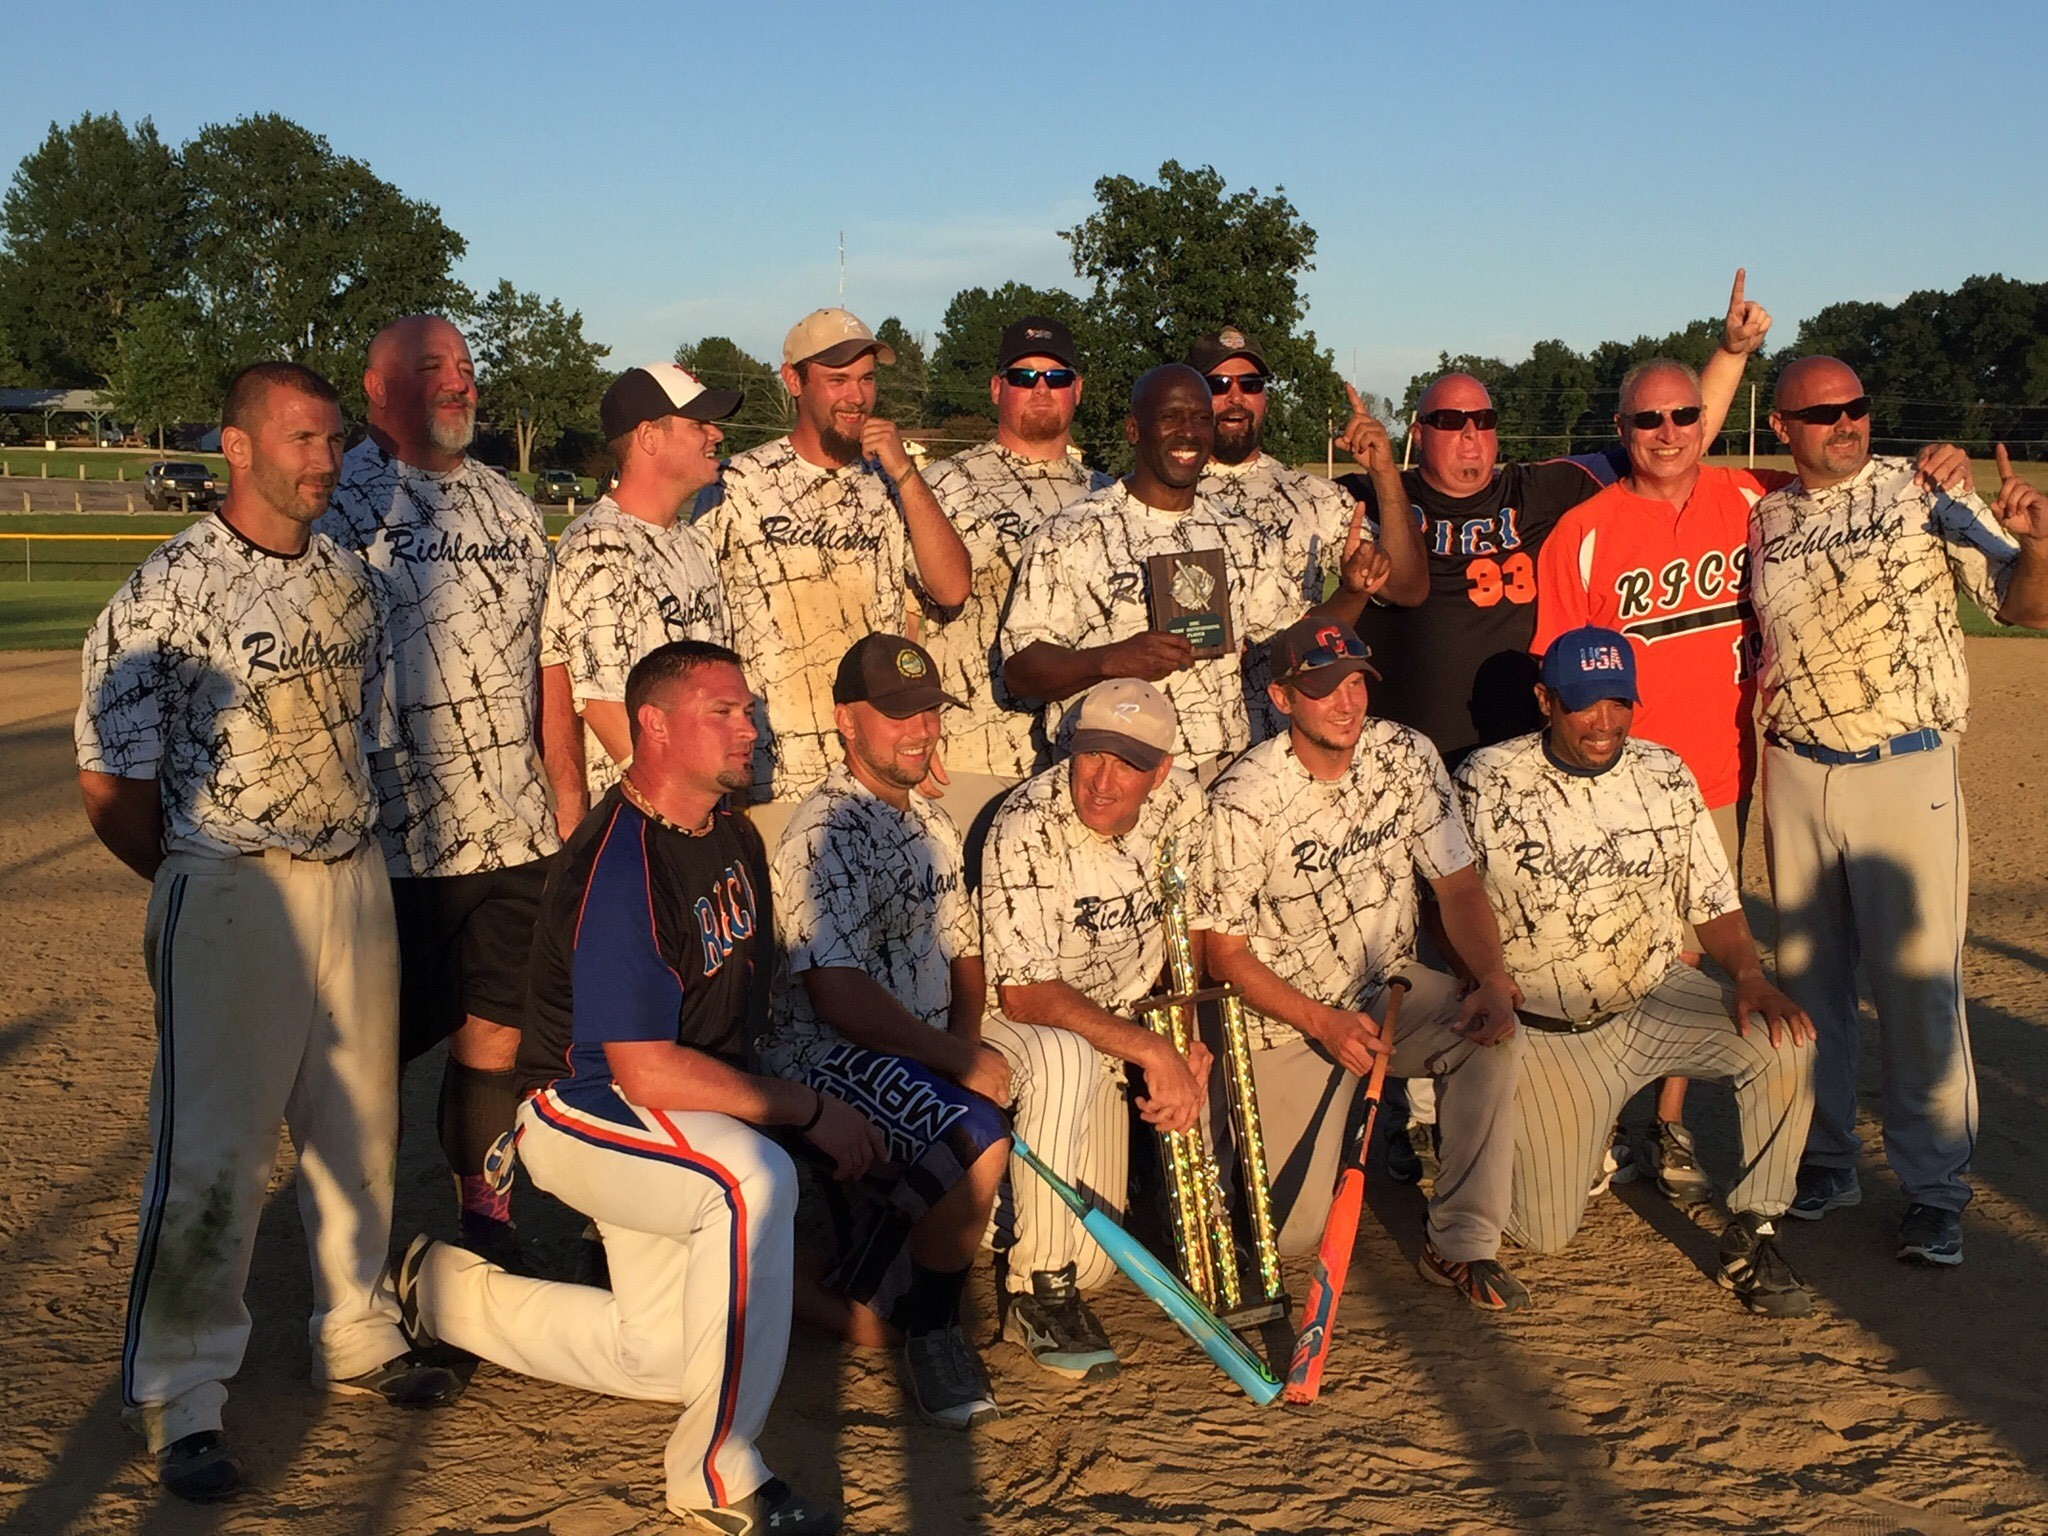 Richland Correctional Takes Softball Championship